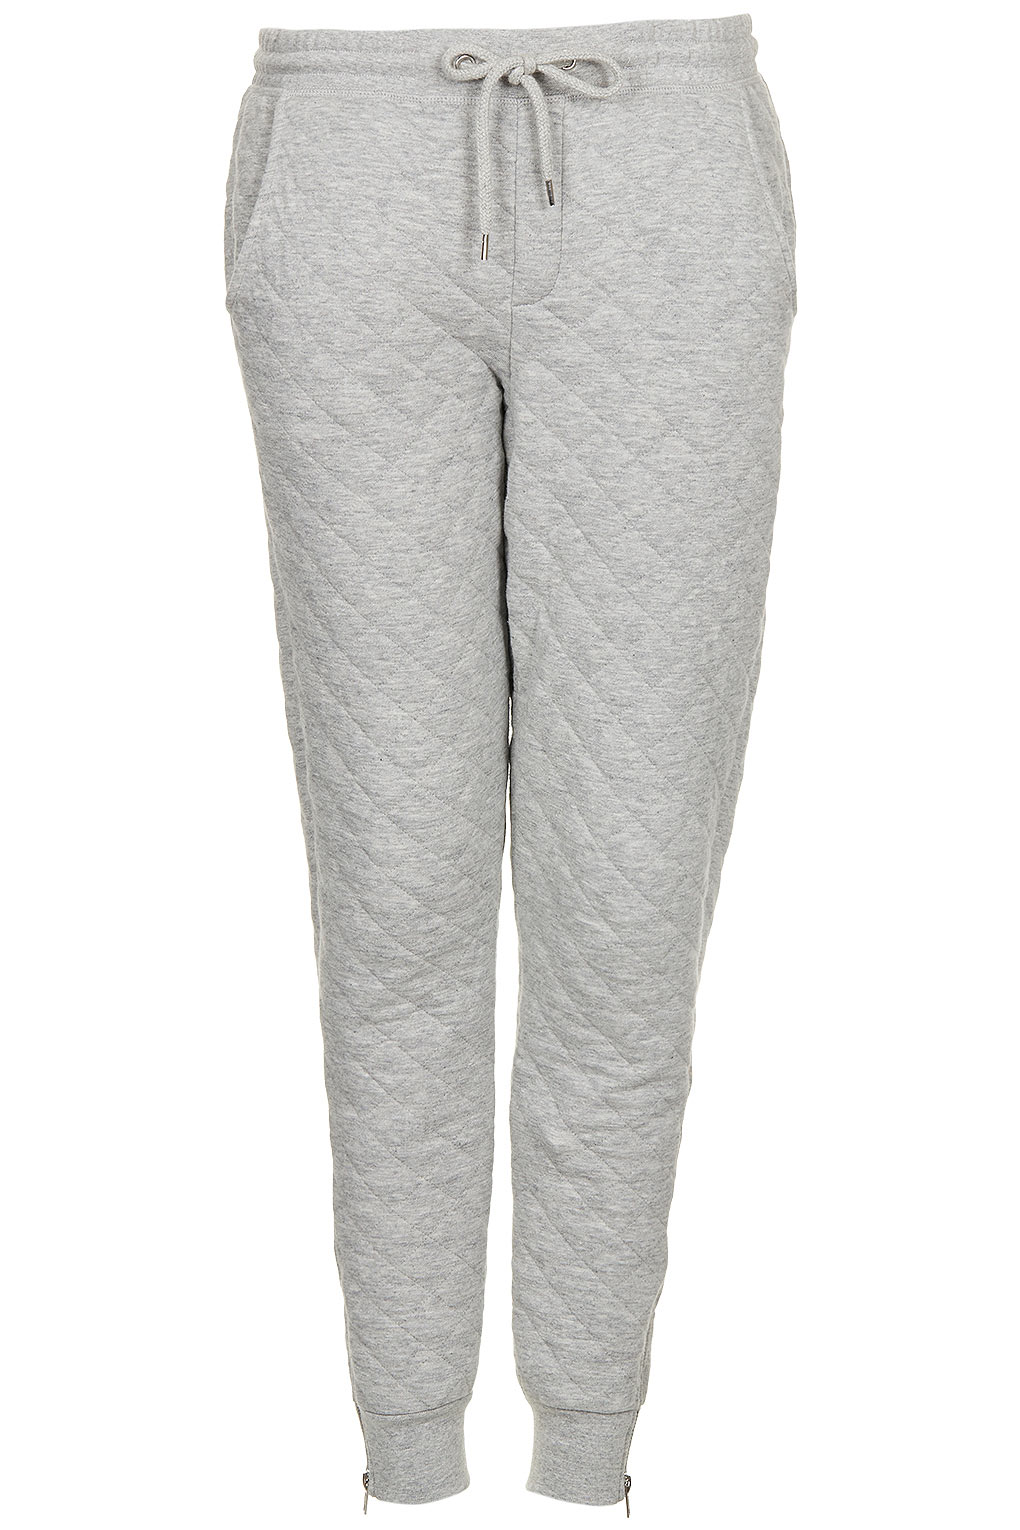 Lyst - Topshop Soft Grey Quilted Joggers in Gray : mens quilted sweatpants - Adamdwight.com